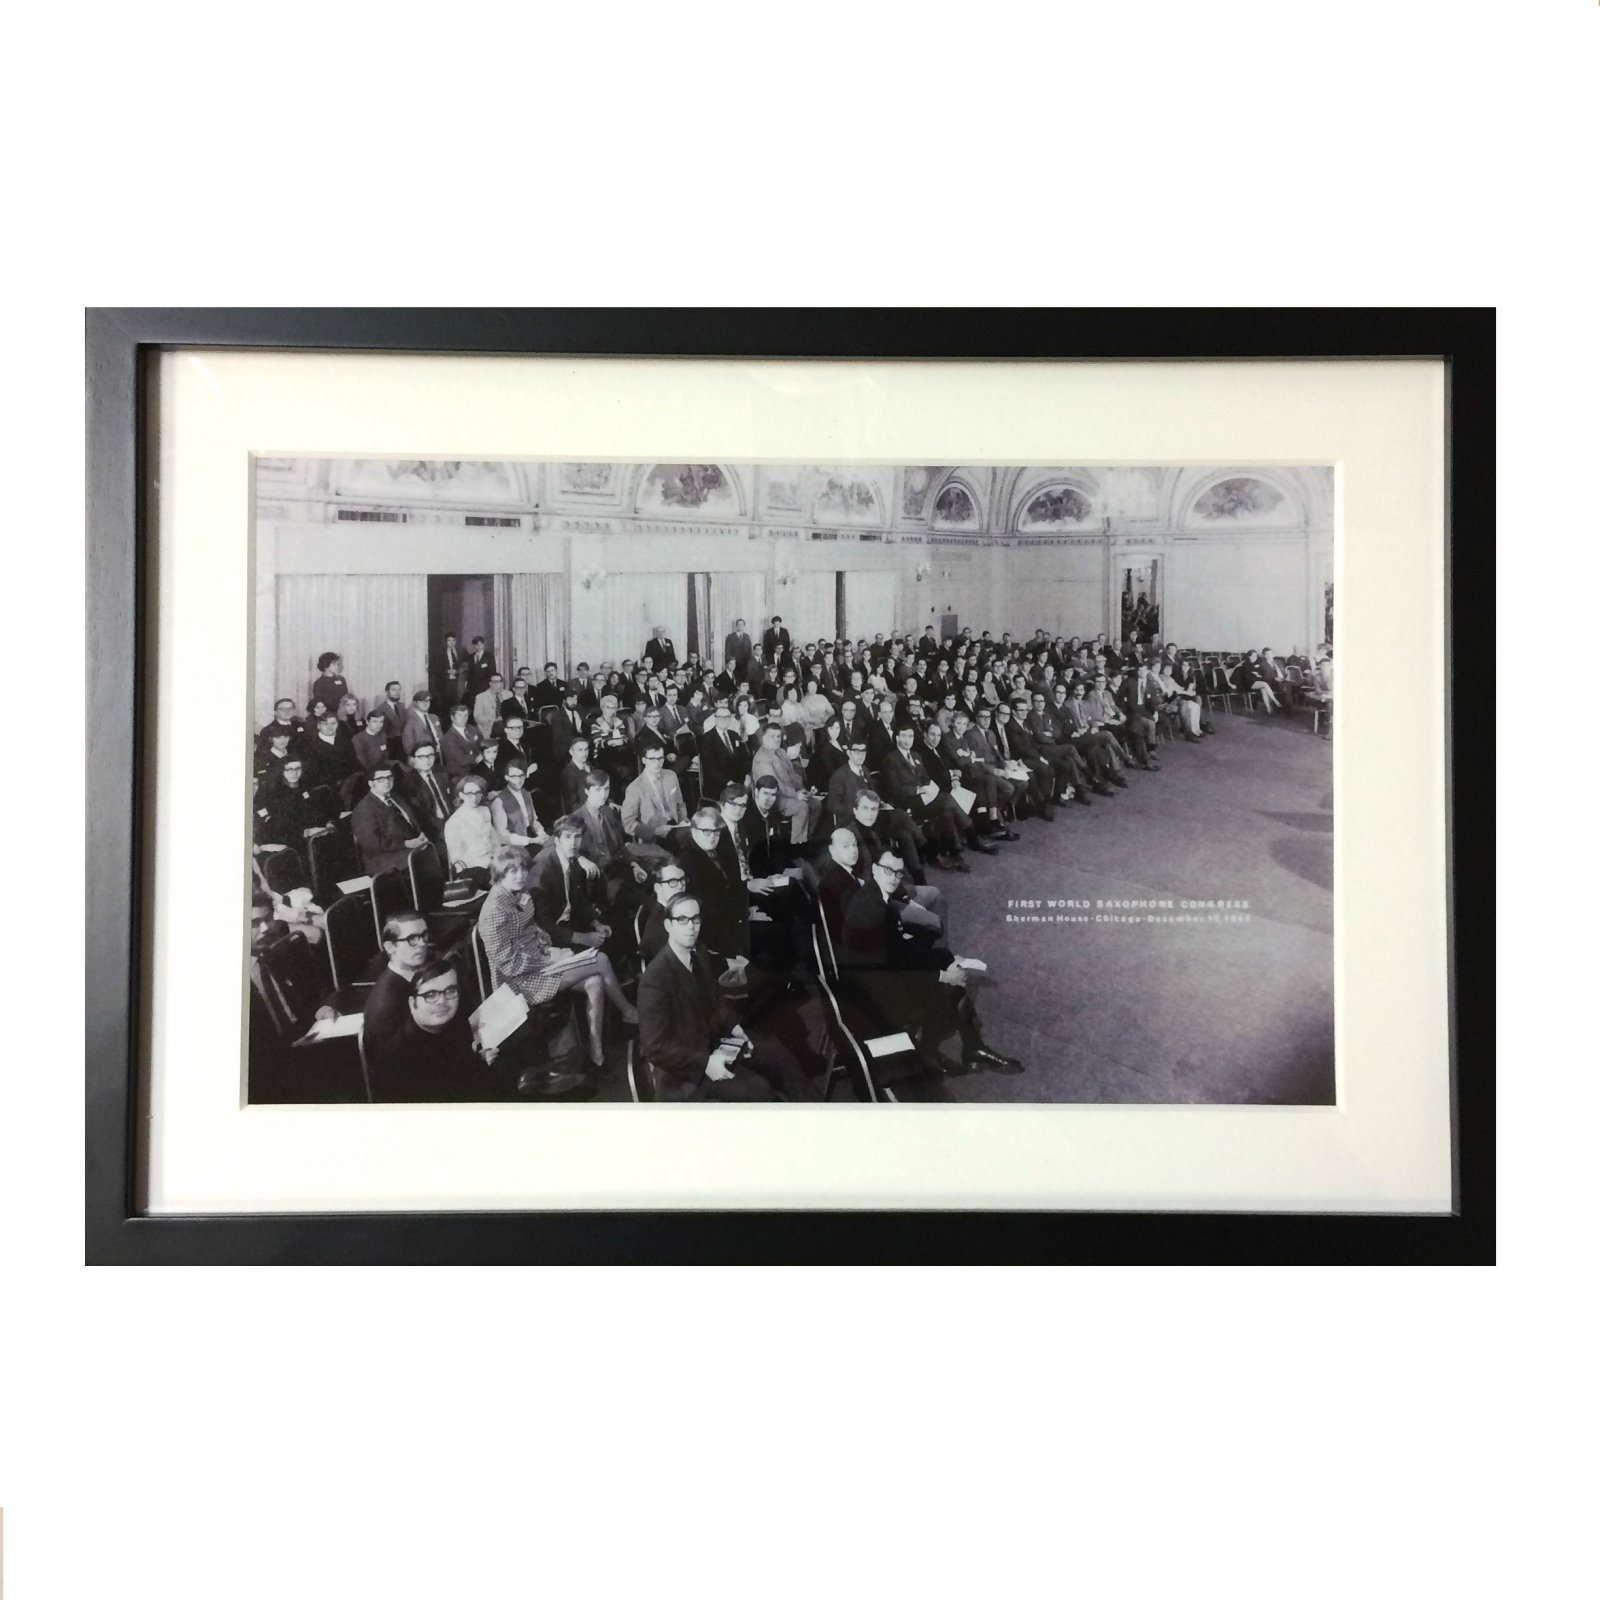 Framed & Matted Black and White Photo from the First World Saxophone Congress: Chicago, 1969